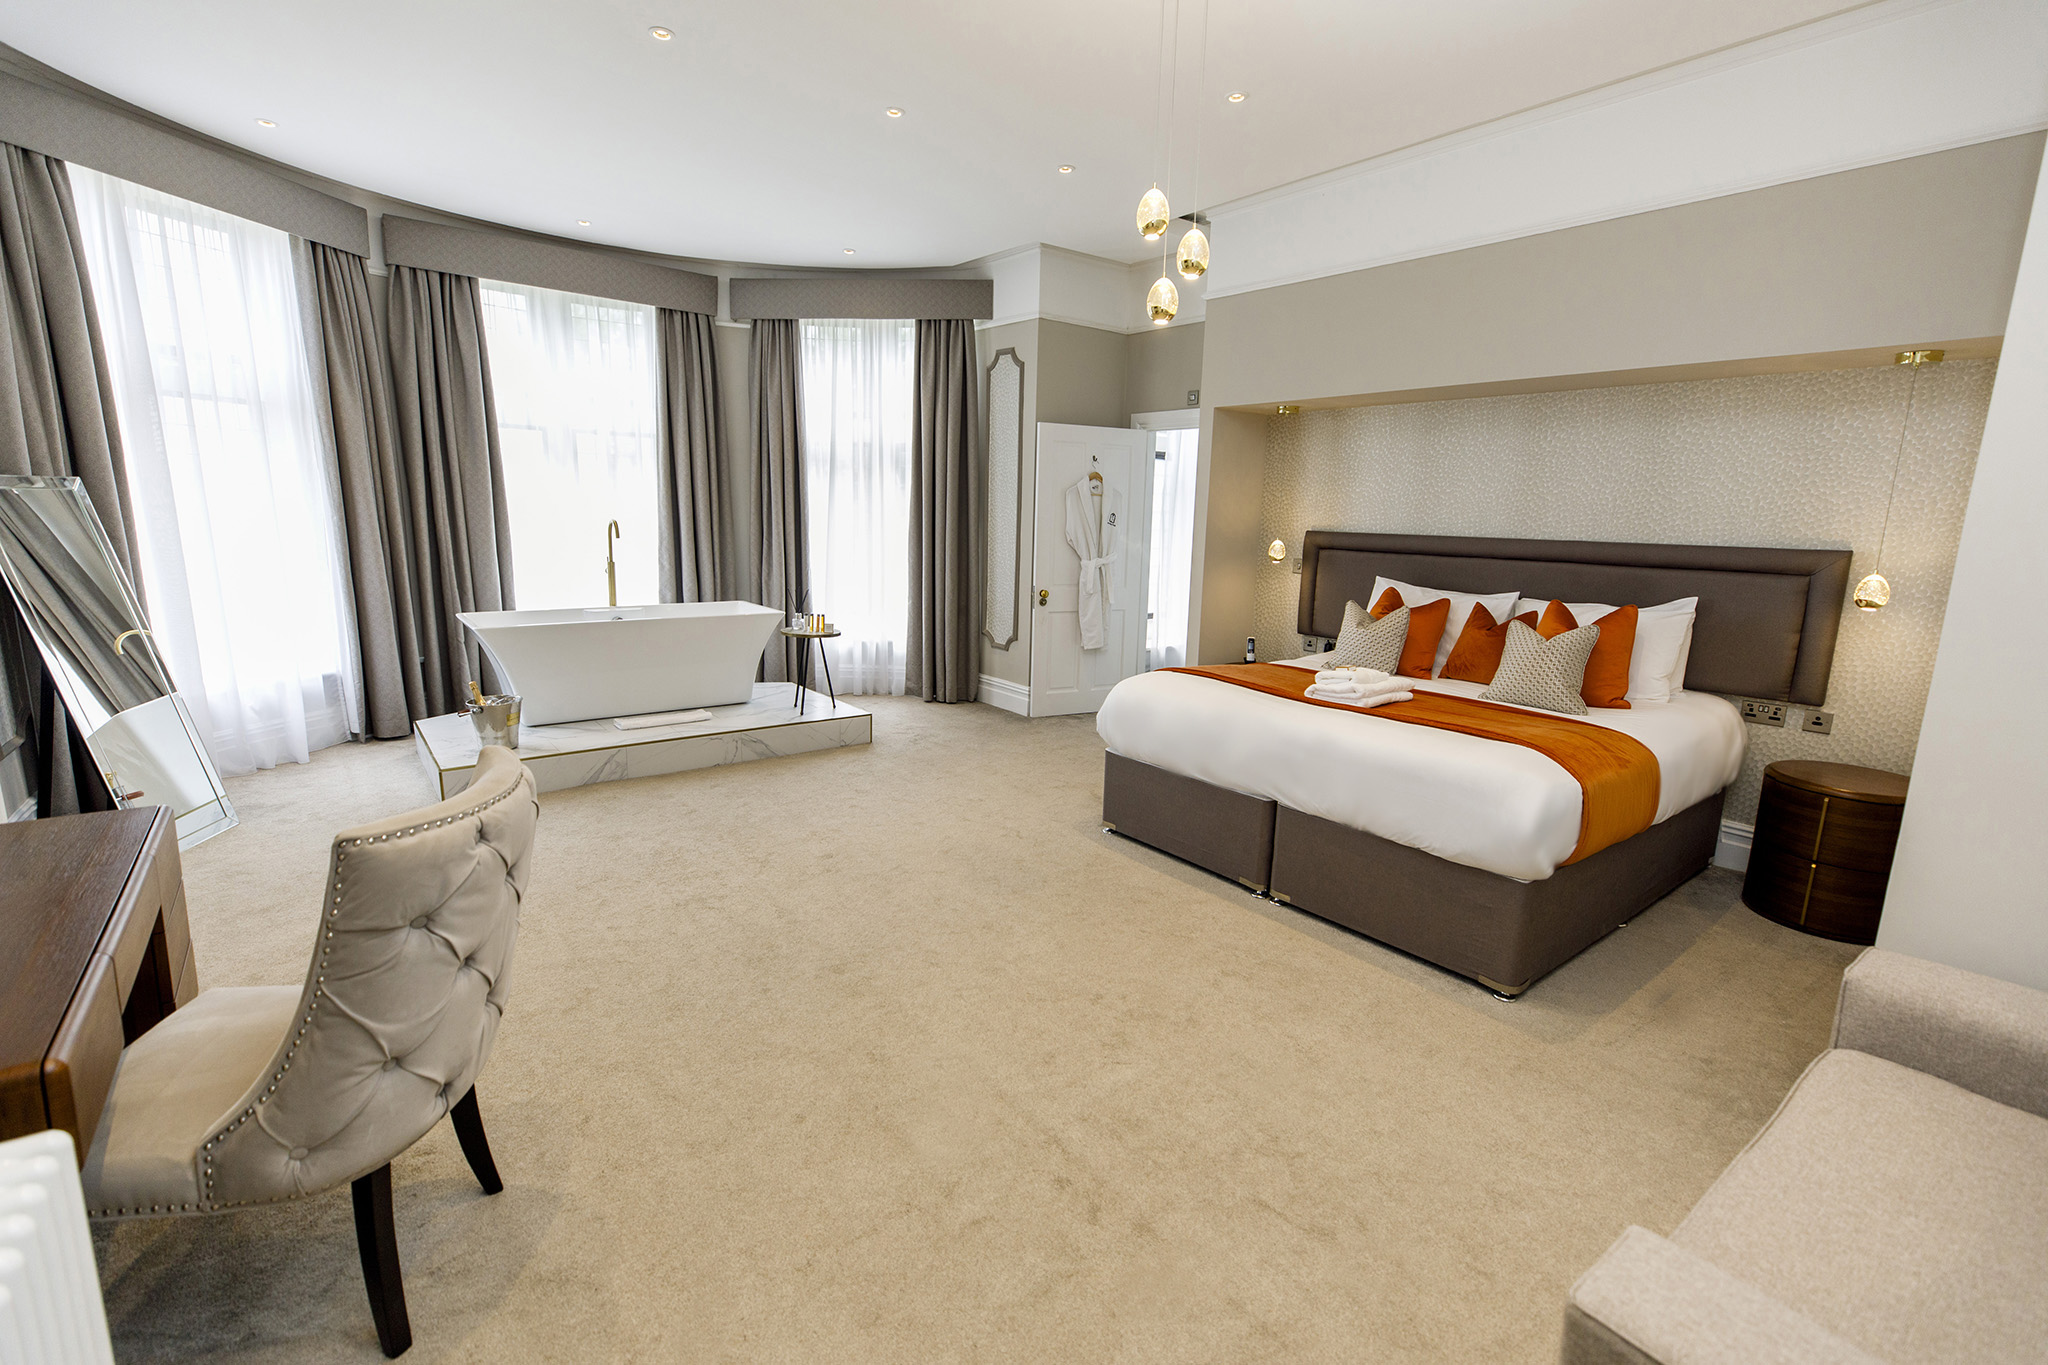 Deluxe hotel room suite with large orange bed and luxury bathtub